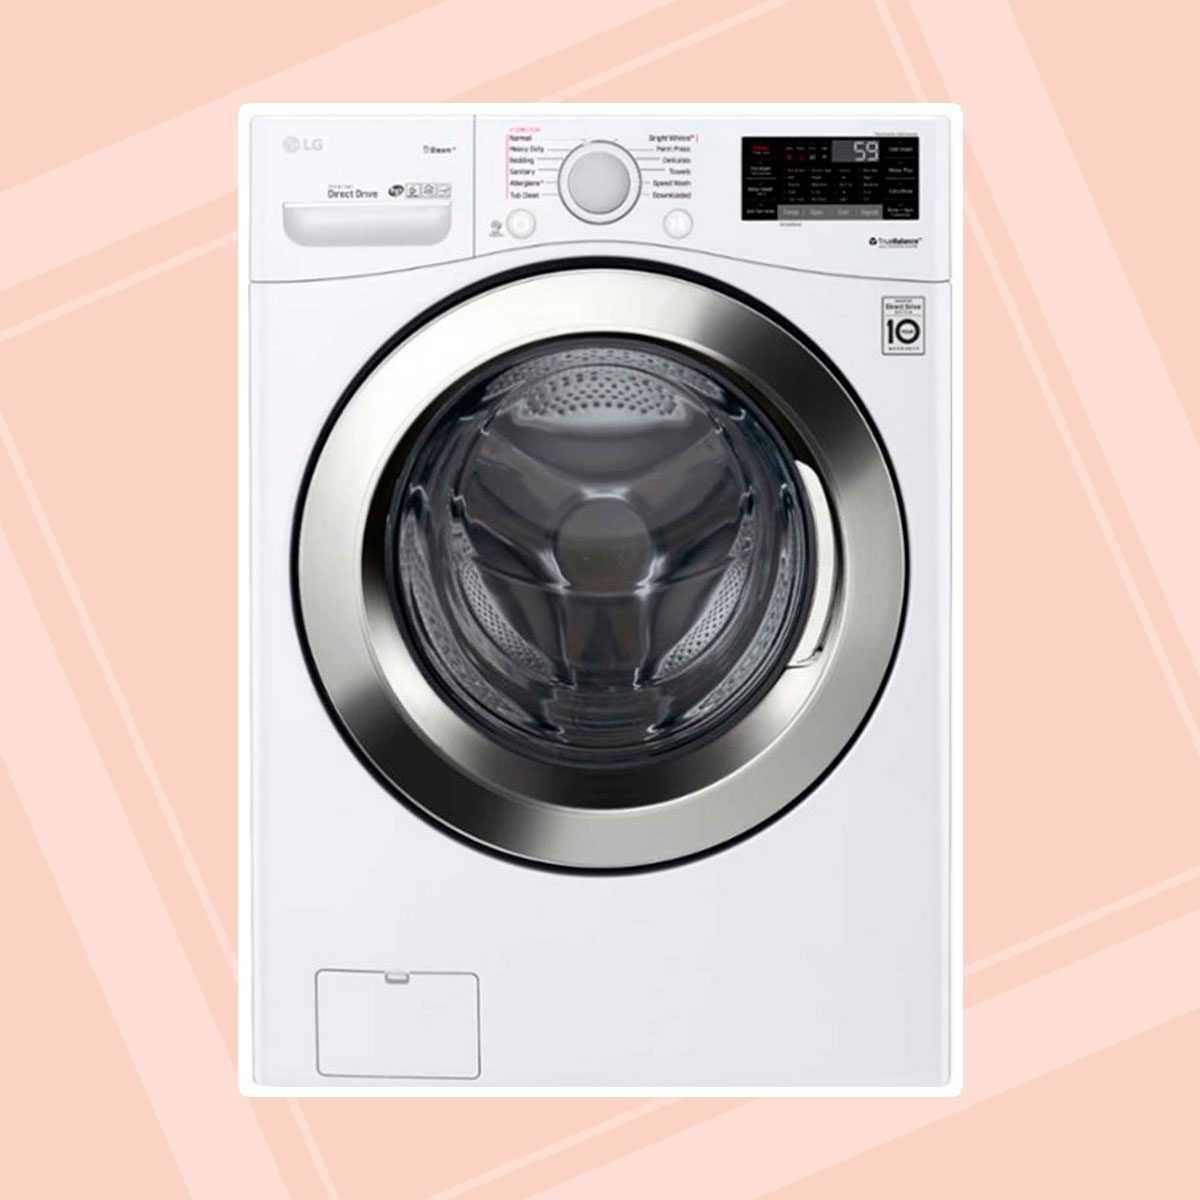 LG Front-Loading Smart Wi-Fi Washer with 6Motion Technology